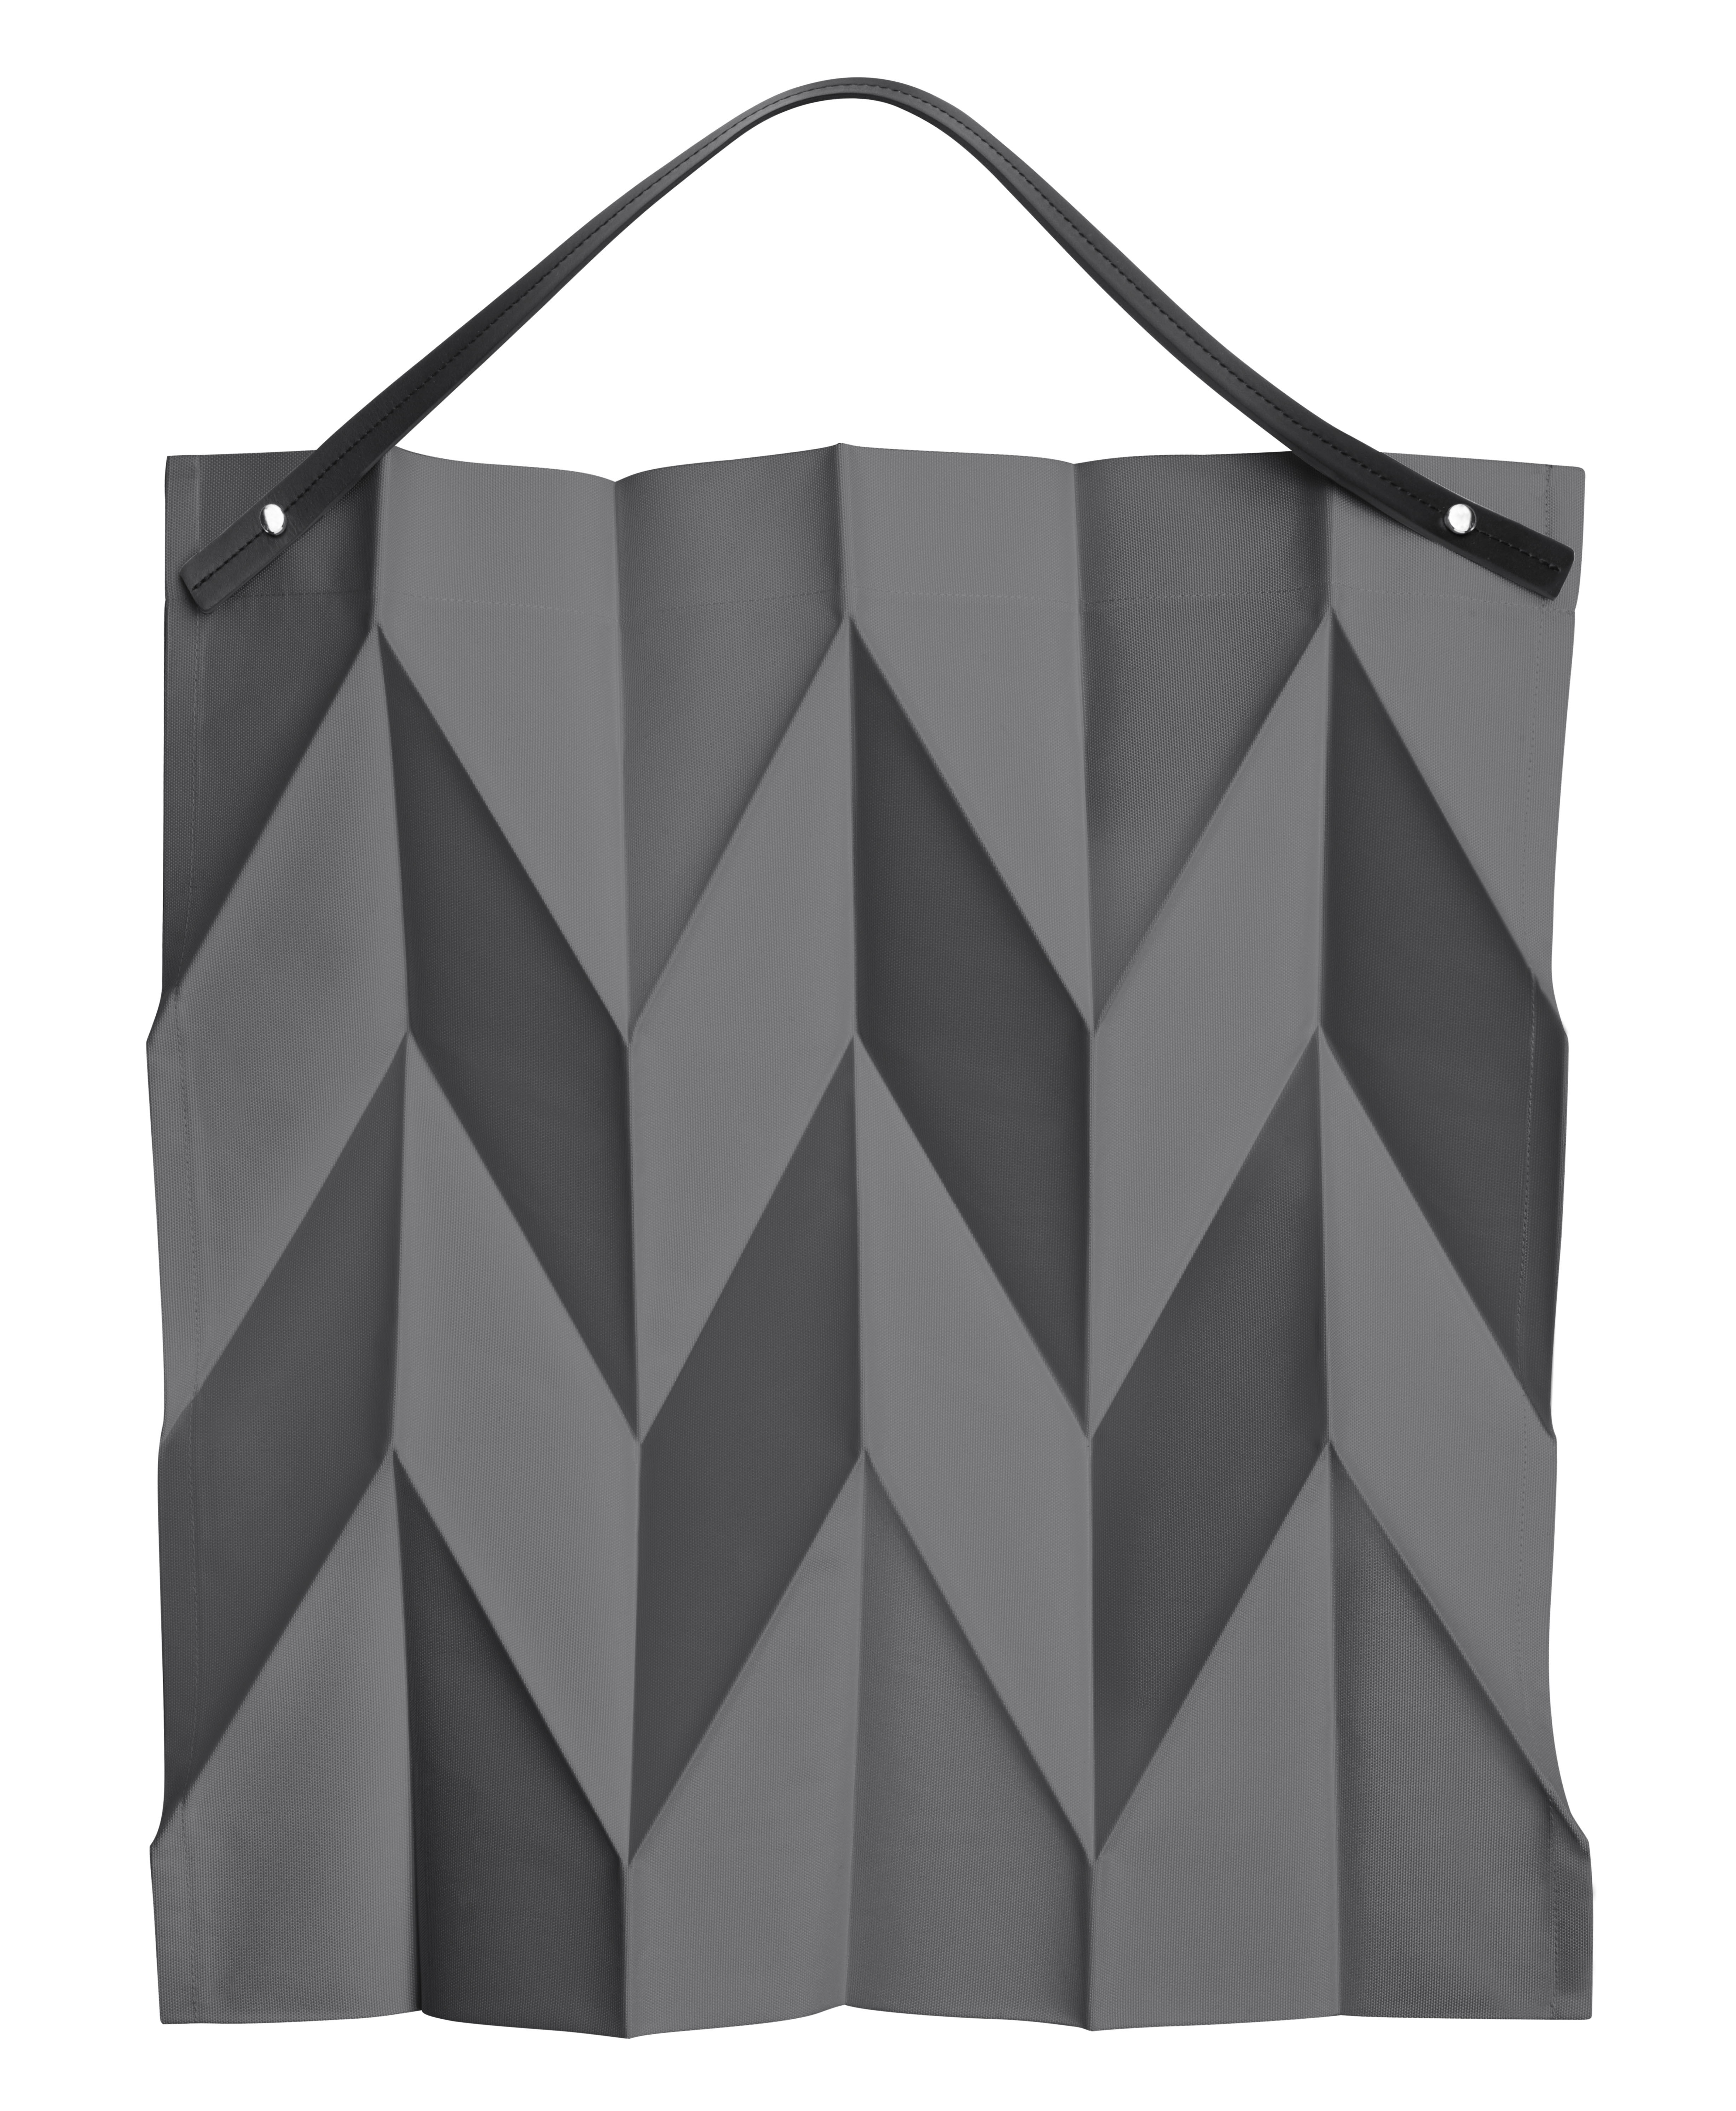 Accessories - Bags, Purses & Luggage - Iittala X Issey Miyake Bag - Fabric & leather by Iittala - Dark grey - Leather, Polyester